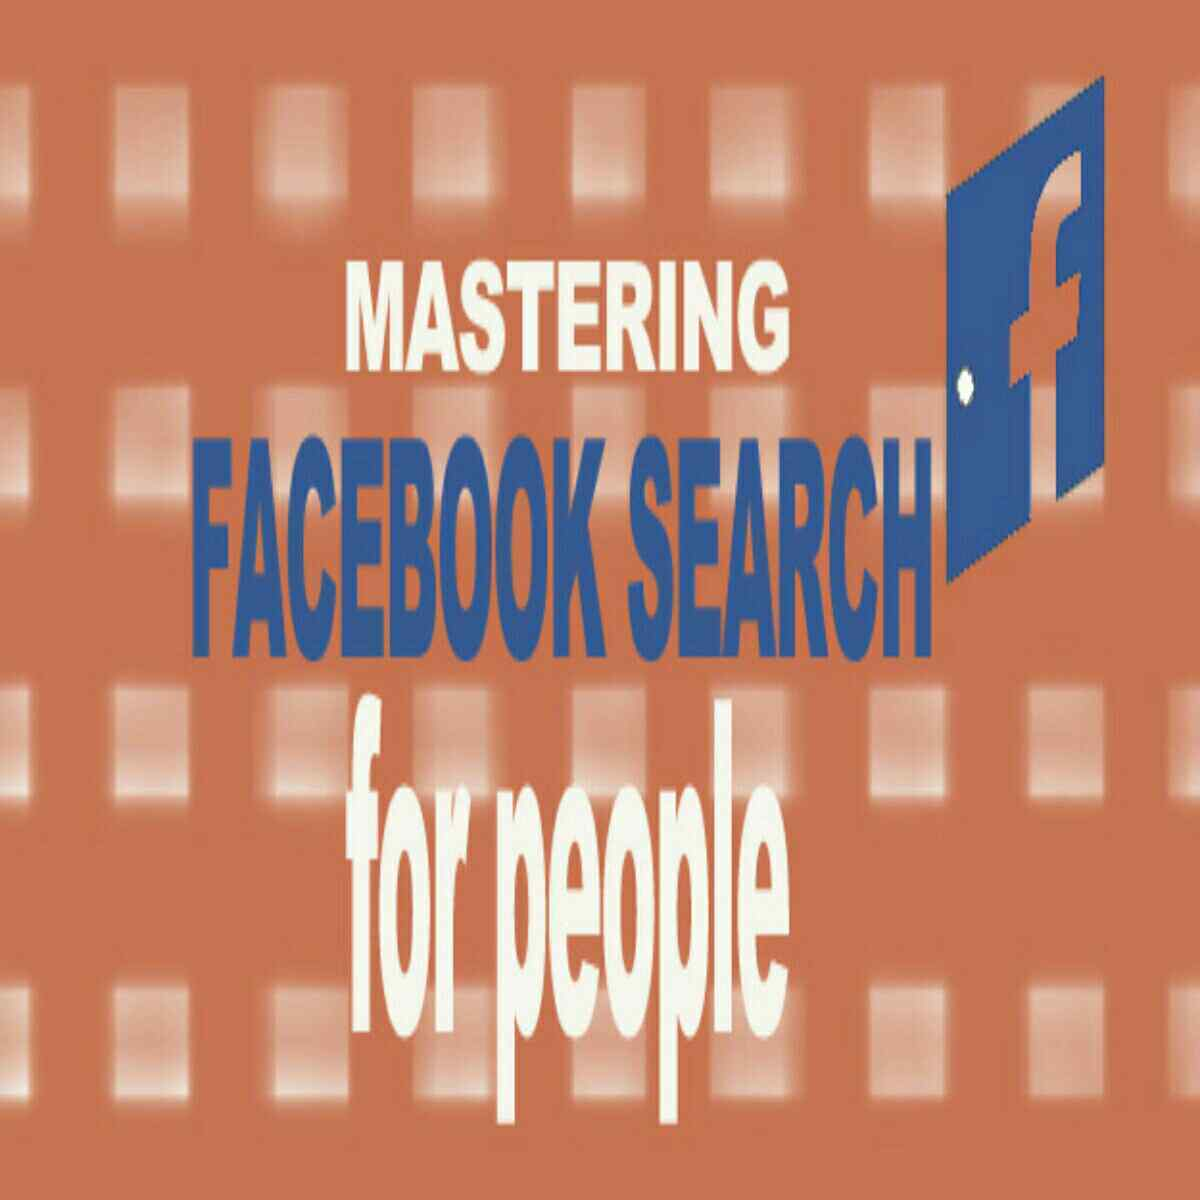 How To Filter Facebook Search For People